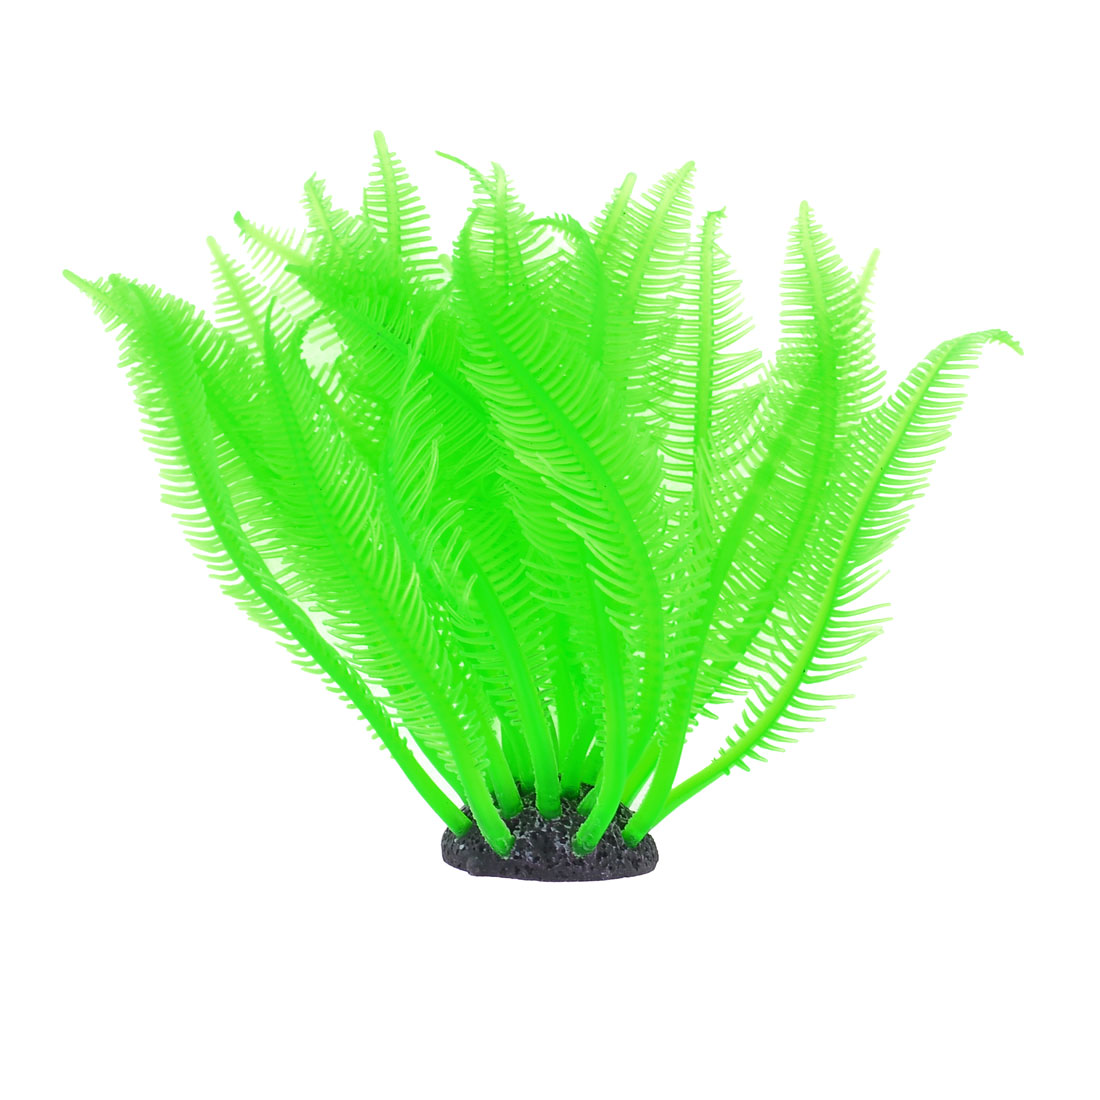 Aquarium Plants Fish Tank Soft Plastic Green Sea Anemone